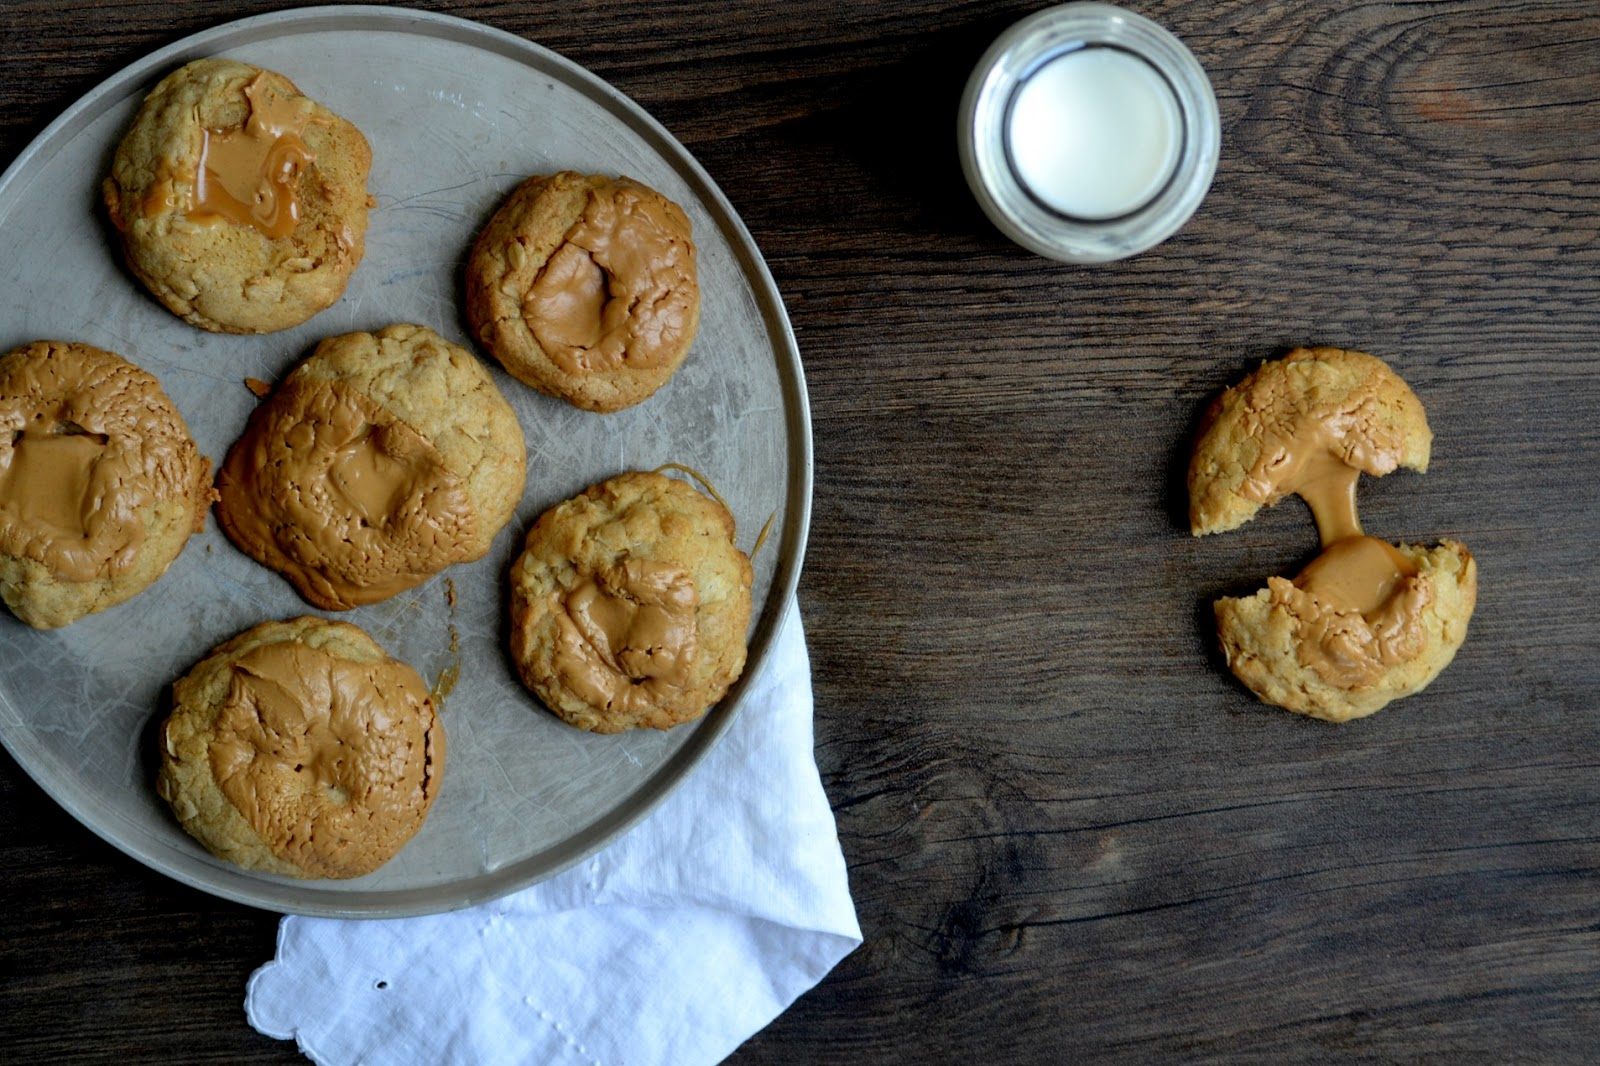 ... : Brown Butter Oatmeal Cookies Filled With Caramel and Peanut Butter